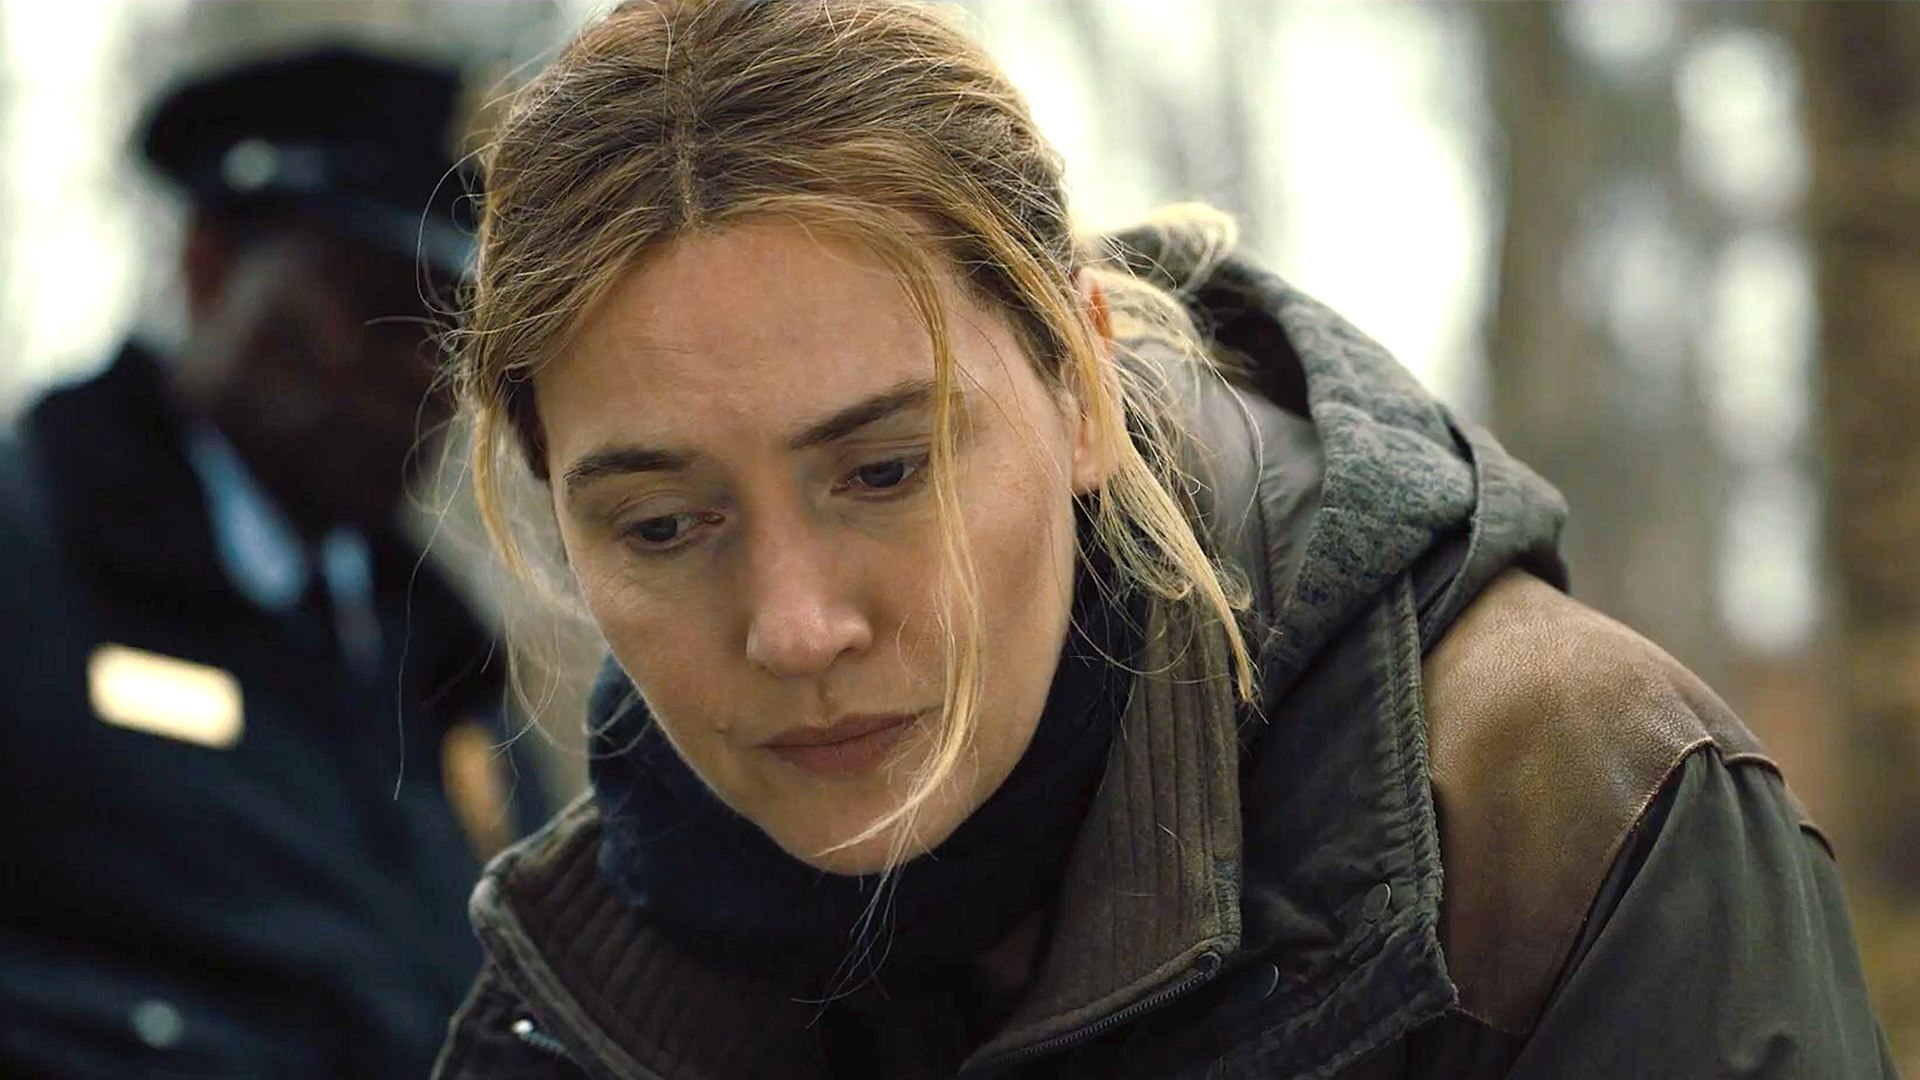 Mare of Easttown with Kate Winslet on HBO Max - Official Teaser Trailer - video Dailymotion